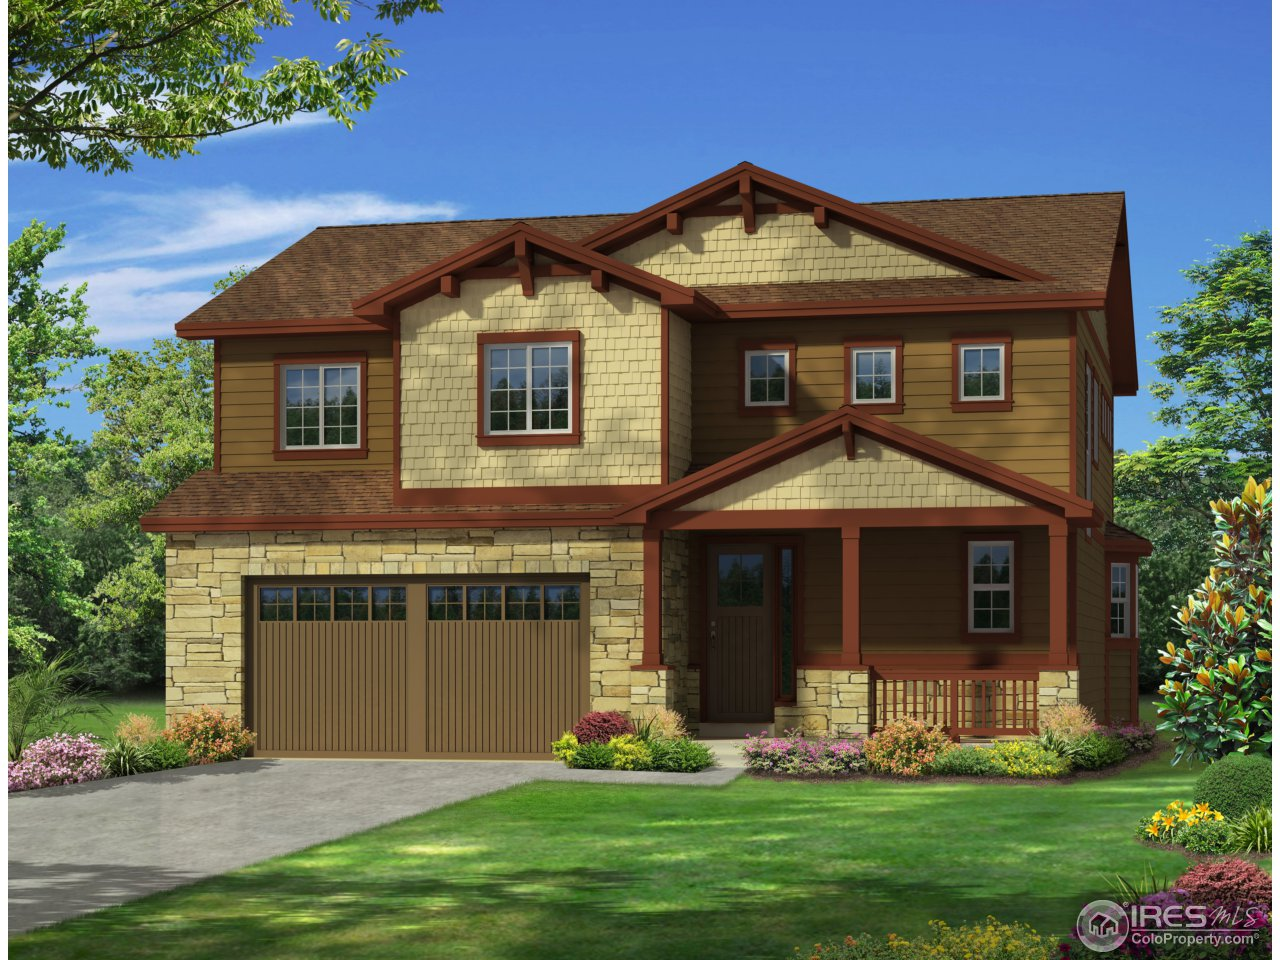 2408 Adobe Dr, Fort Collins CO 80525